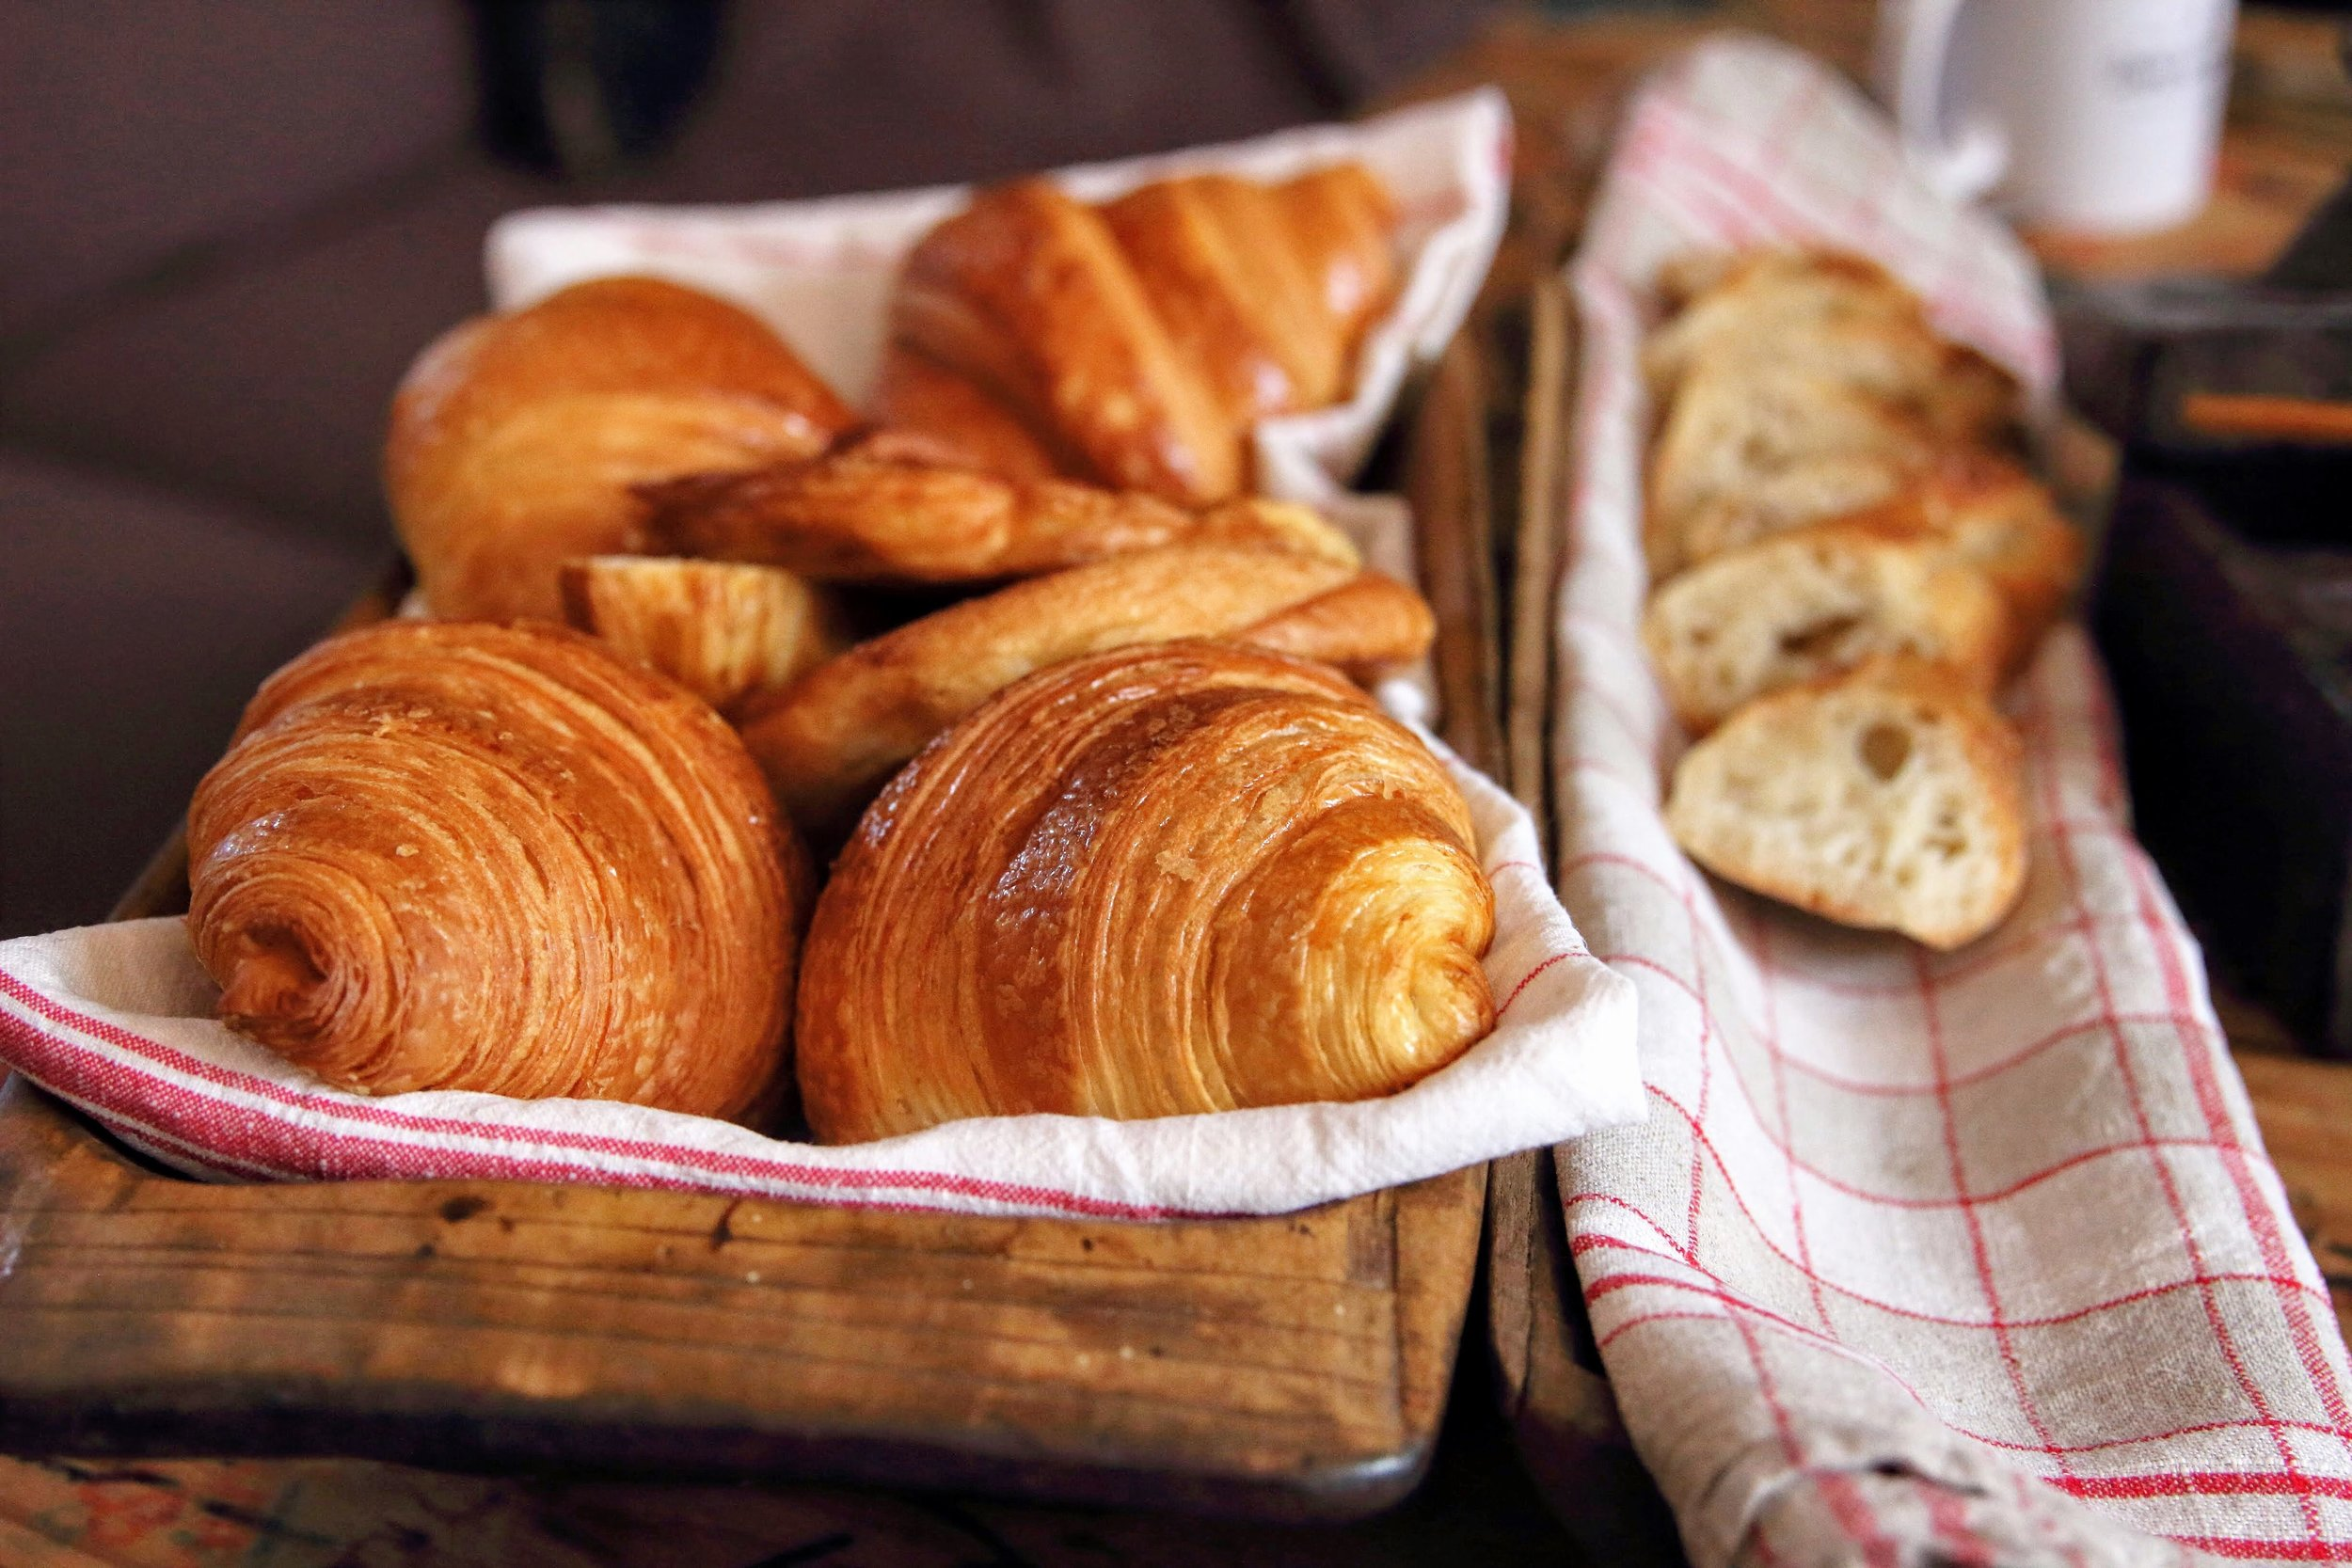 Classic croissants in Paris | 5 Food Lessons A European Adventure Taught This Southern Gal - Cheers Years Blog #croissant #breadinparis